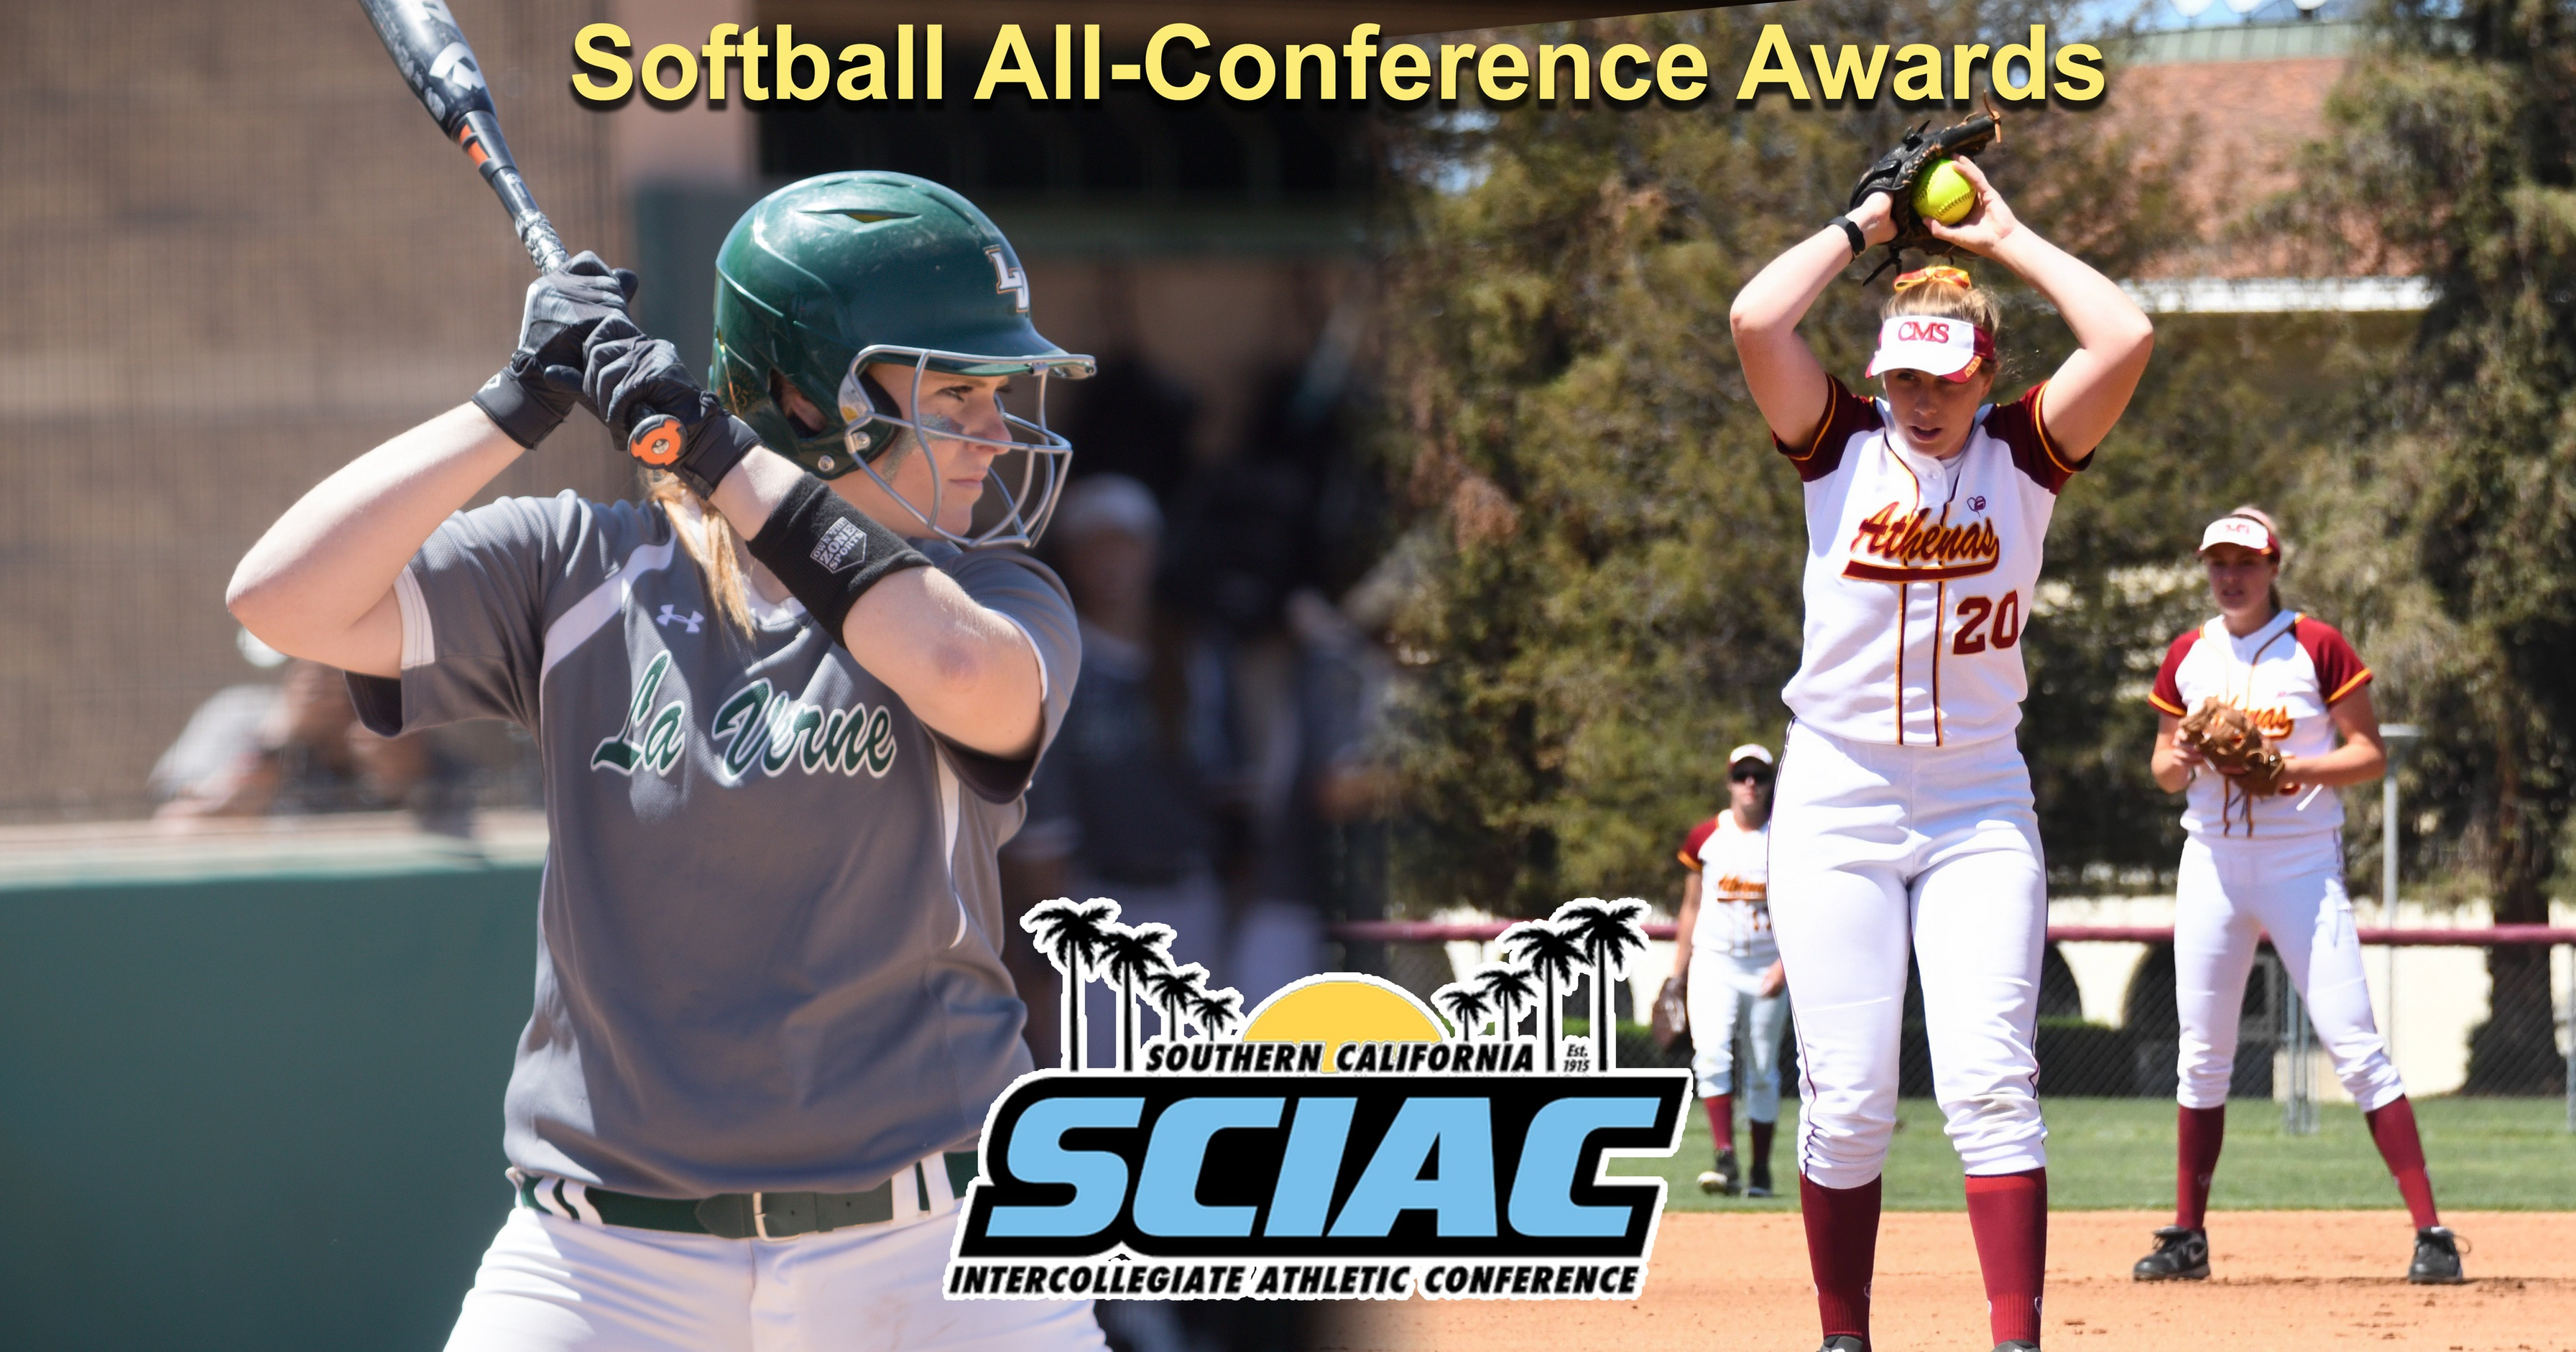 2017 Softball All-Conference Teams